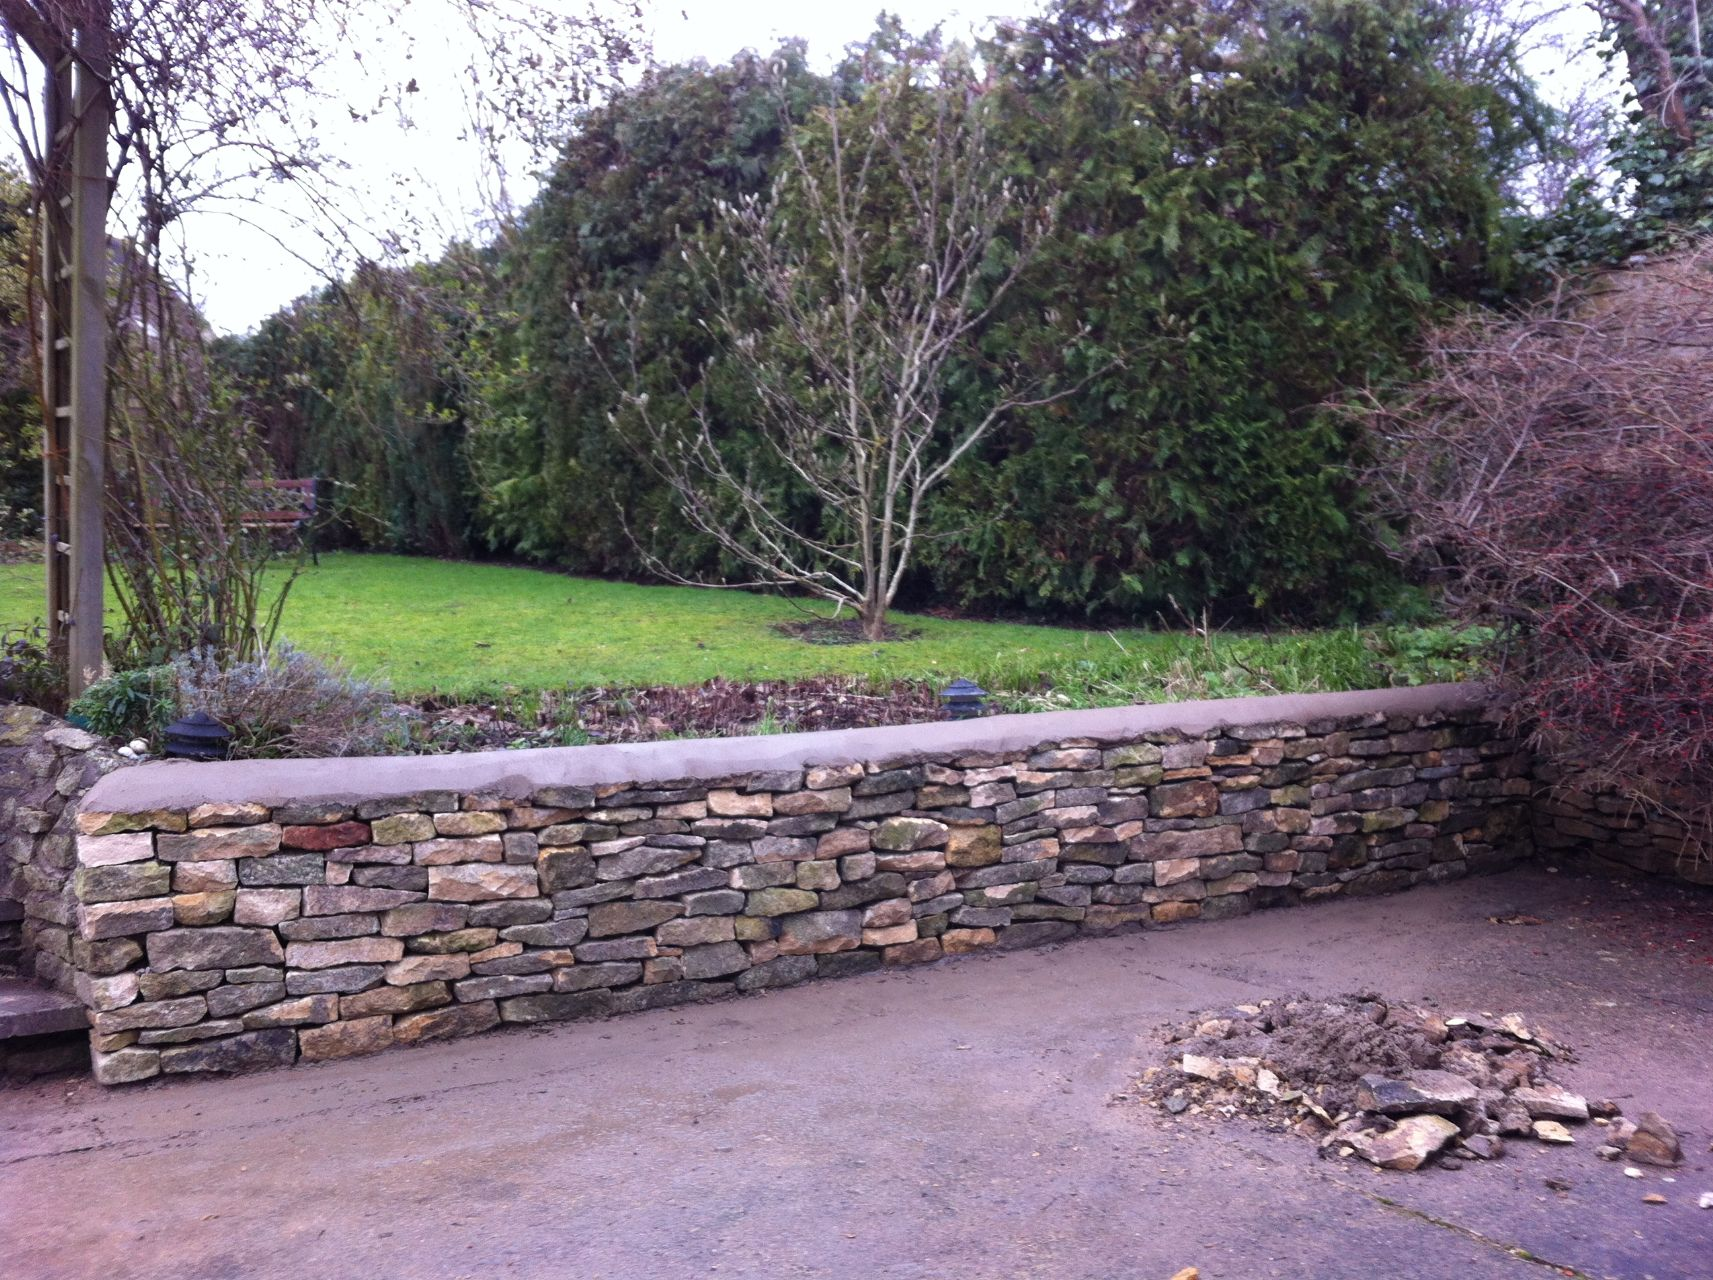 Dry Stone Walling in Tredington